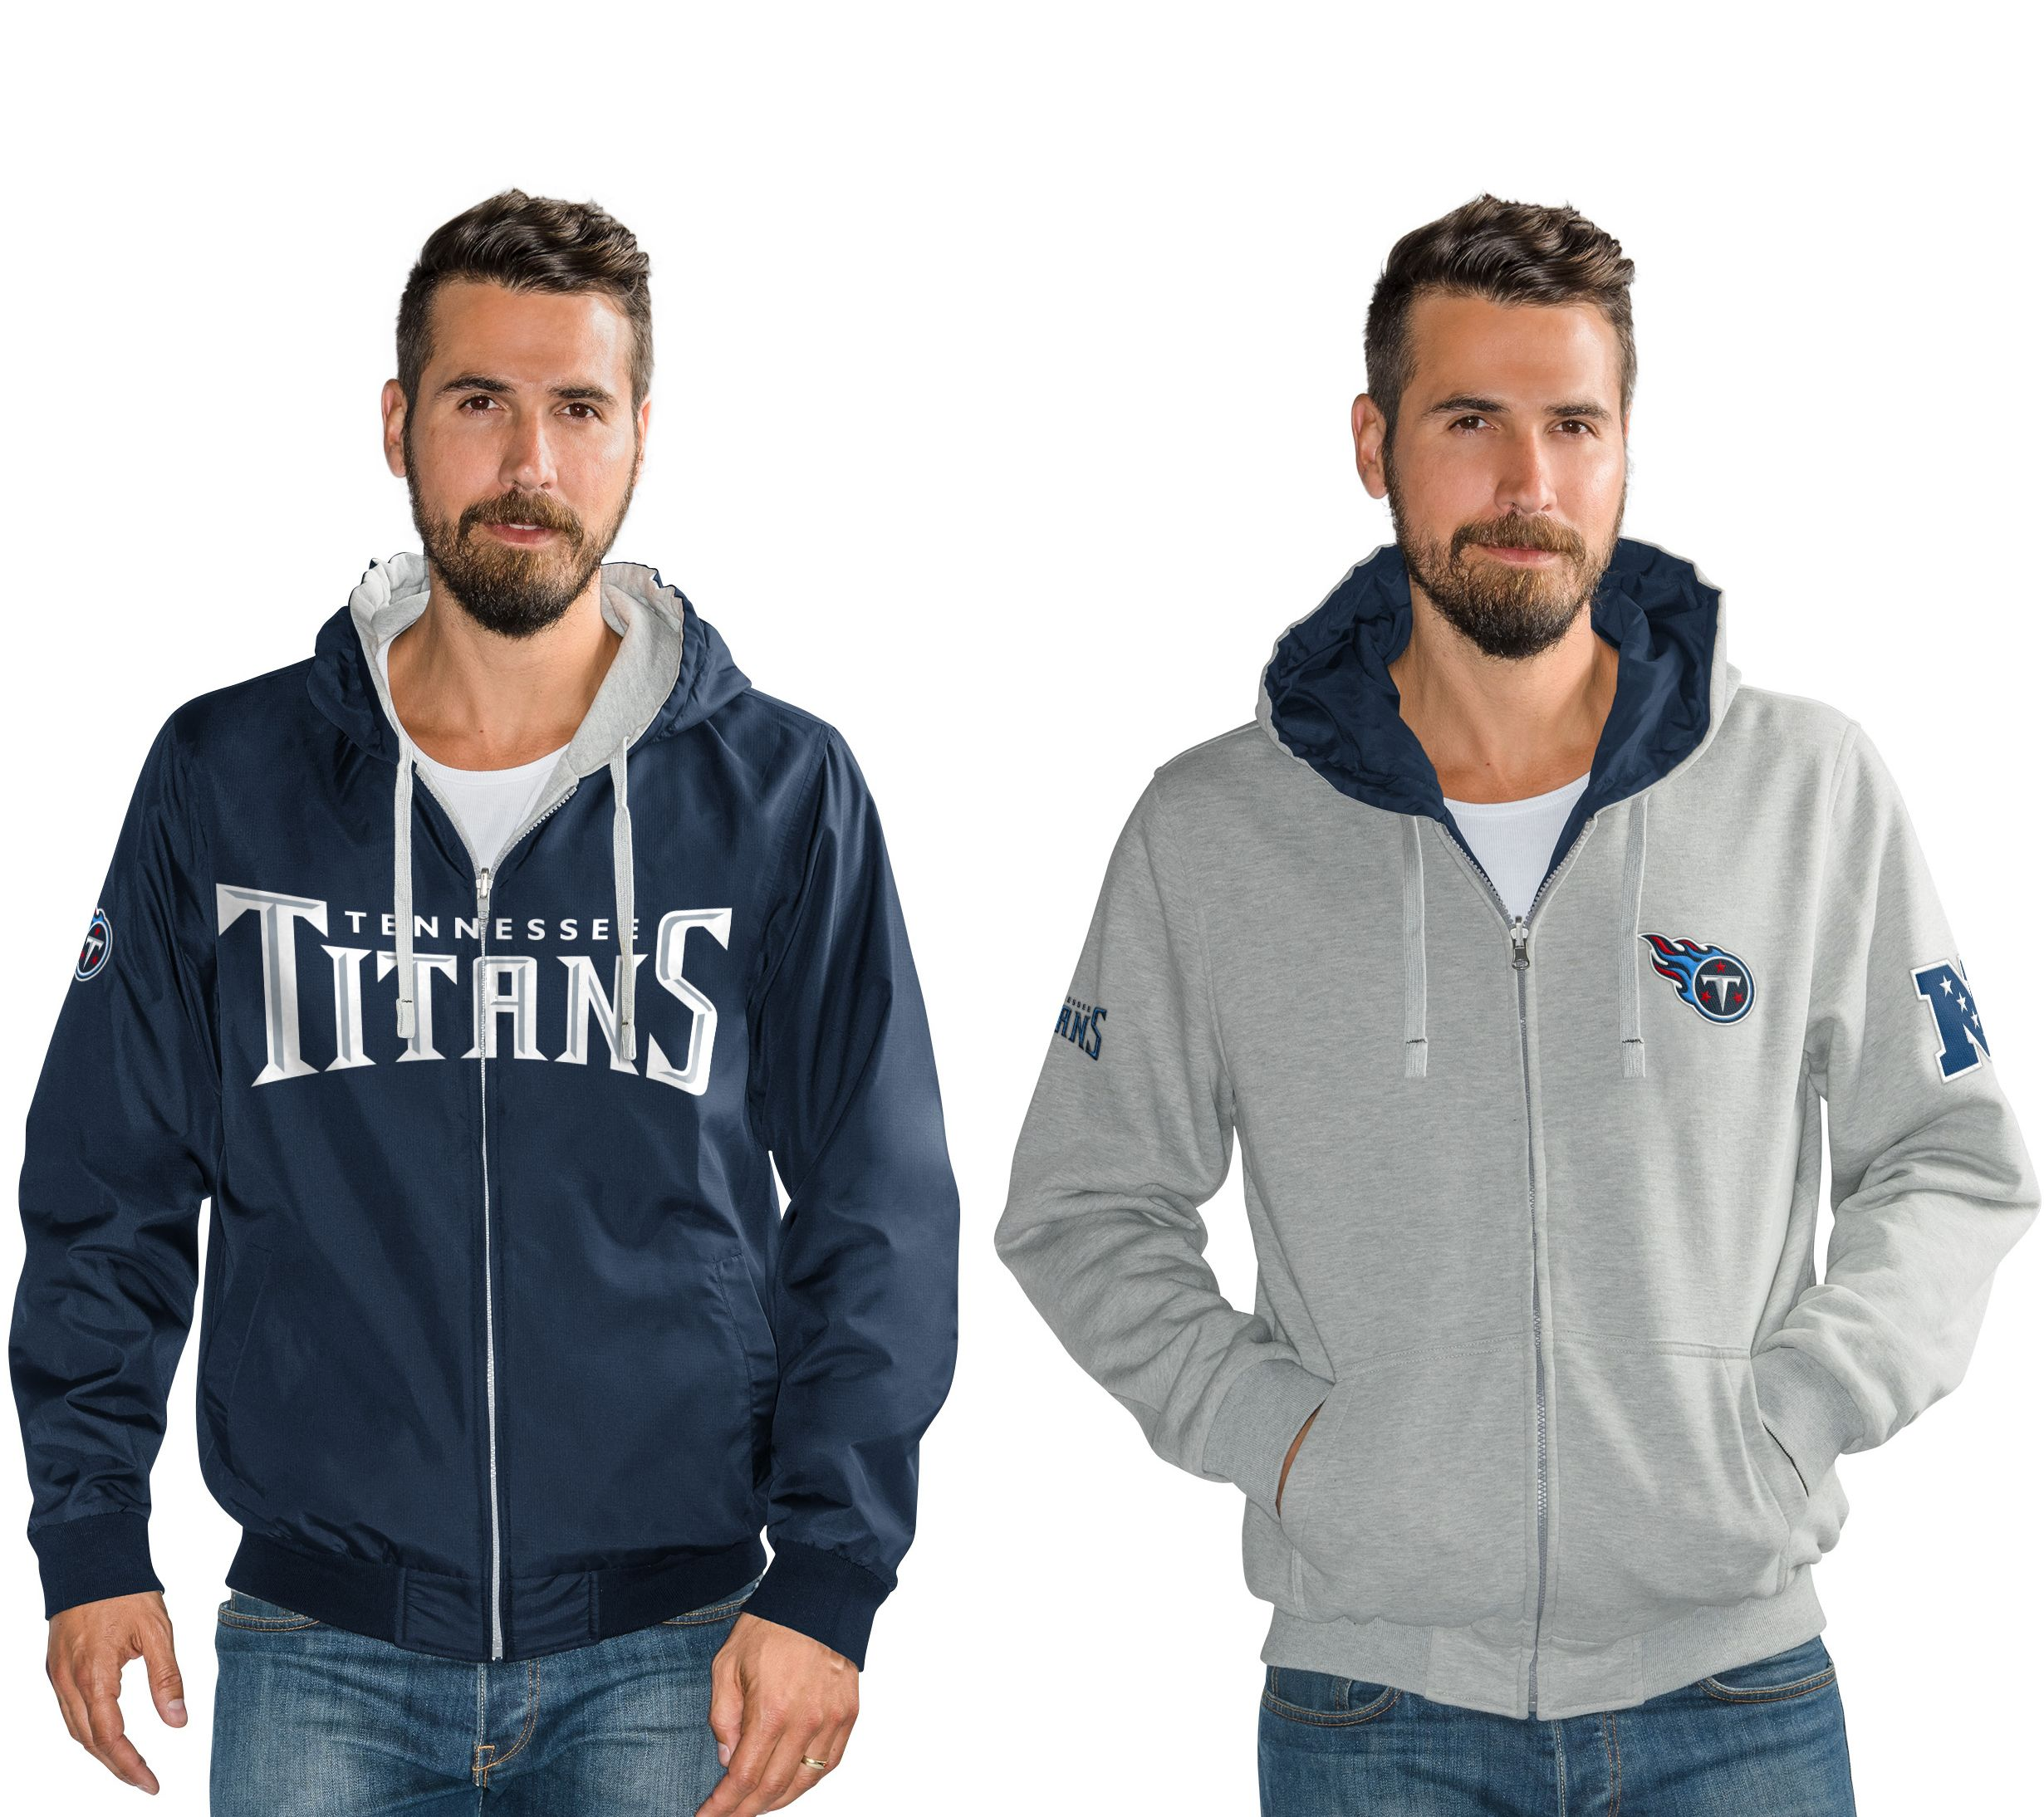 100% authentic eaf52 998c7 NFL Reversible Hoodie and Jacket in Team Colors — QVC.com